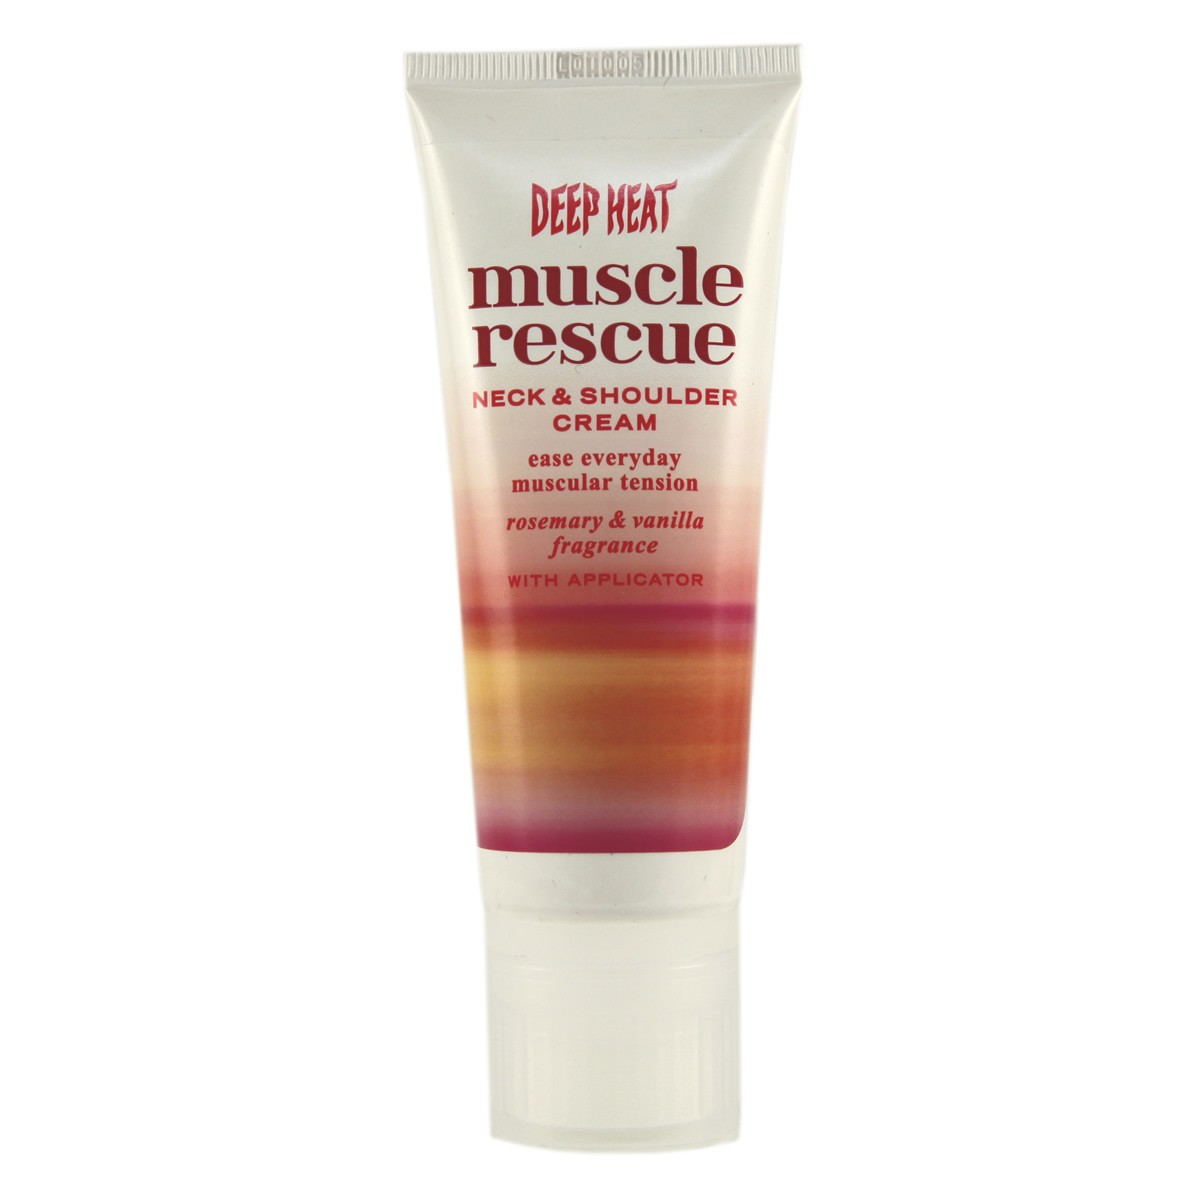 Deep Heat Muscle Rescue Neck & Shoulder Cream